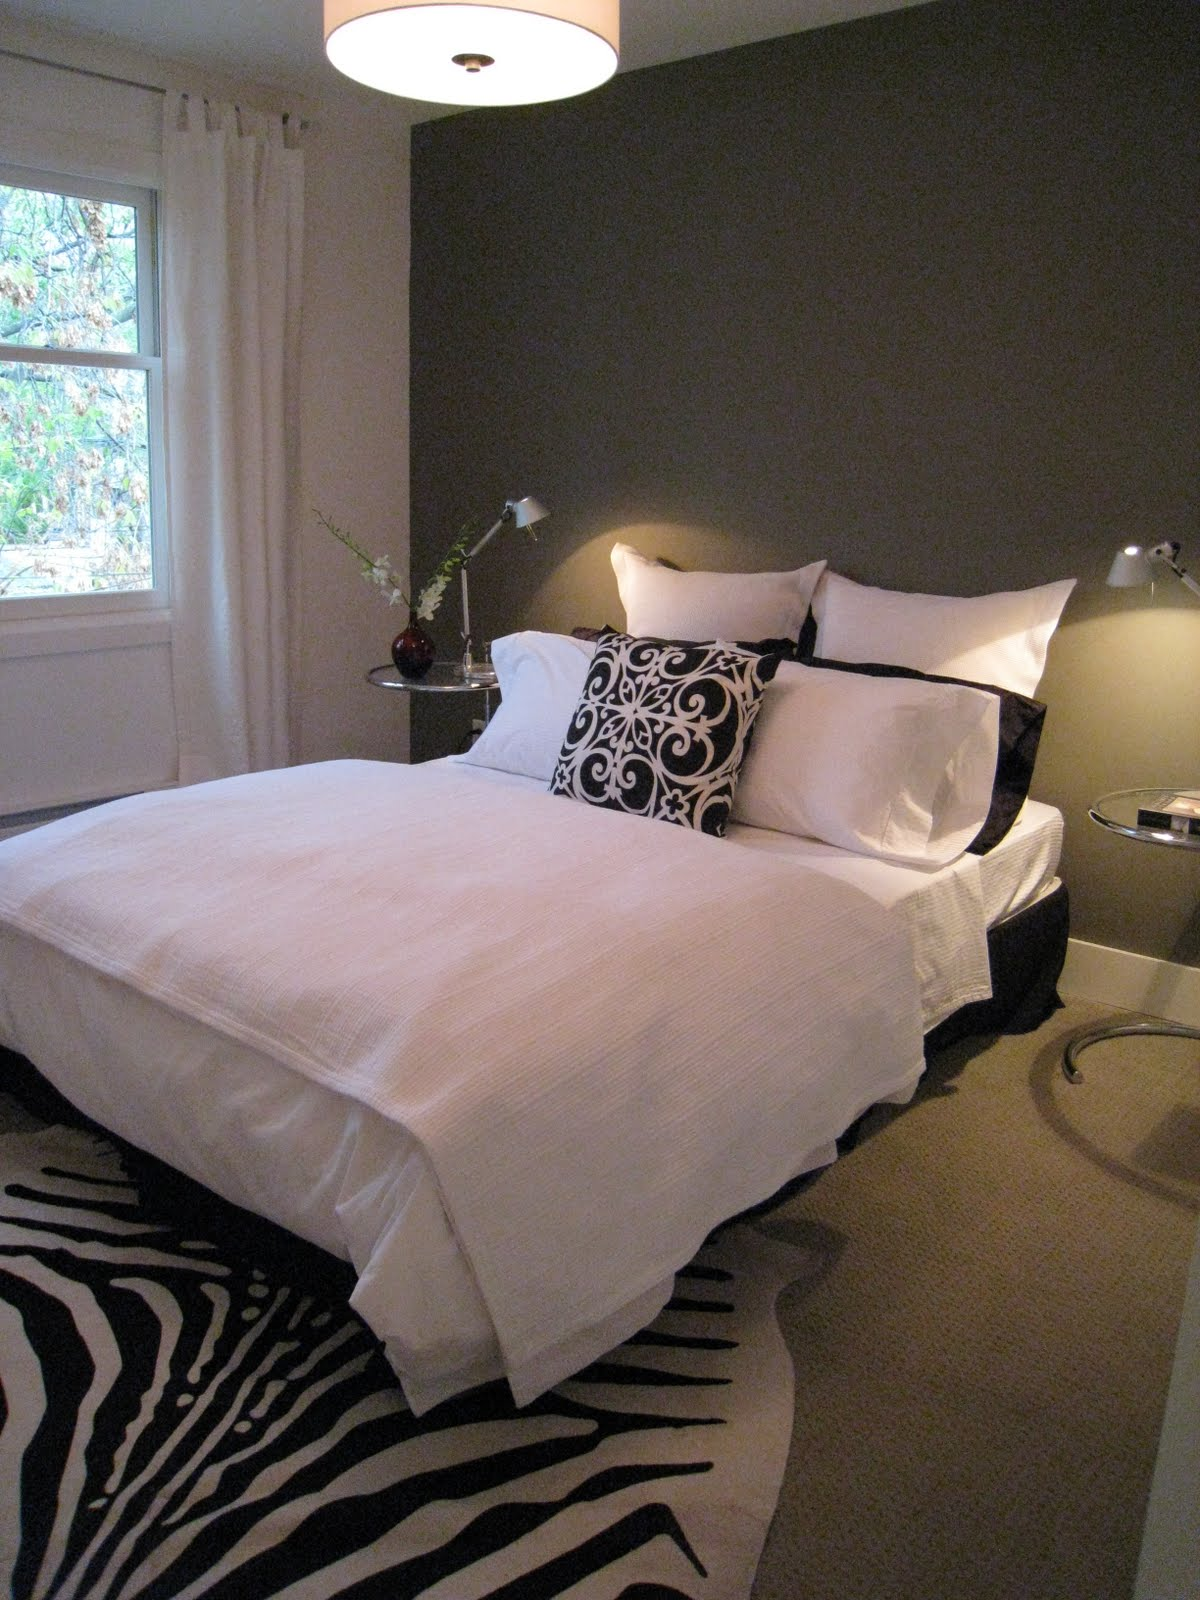 Gray-Accent-Wall-Bedroom Gray Dining Room With Beige Kitchen Decorating Ideas on beige dining room curtains, christmas table decorating ideas, beige christmas tree decorating ideas, dining room ceiling design ideas, beige living rooms, beige kitchen ideas, beige bathrooms, beige bedroom decorating ideas,